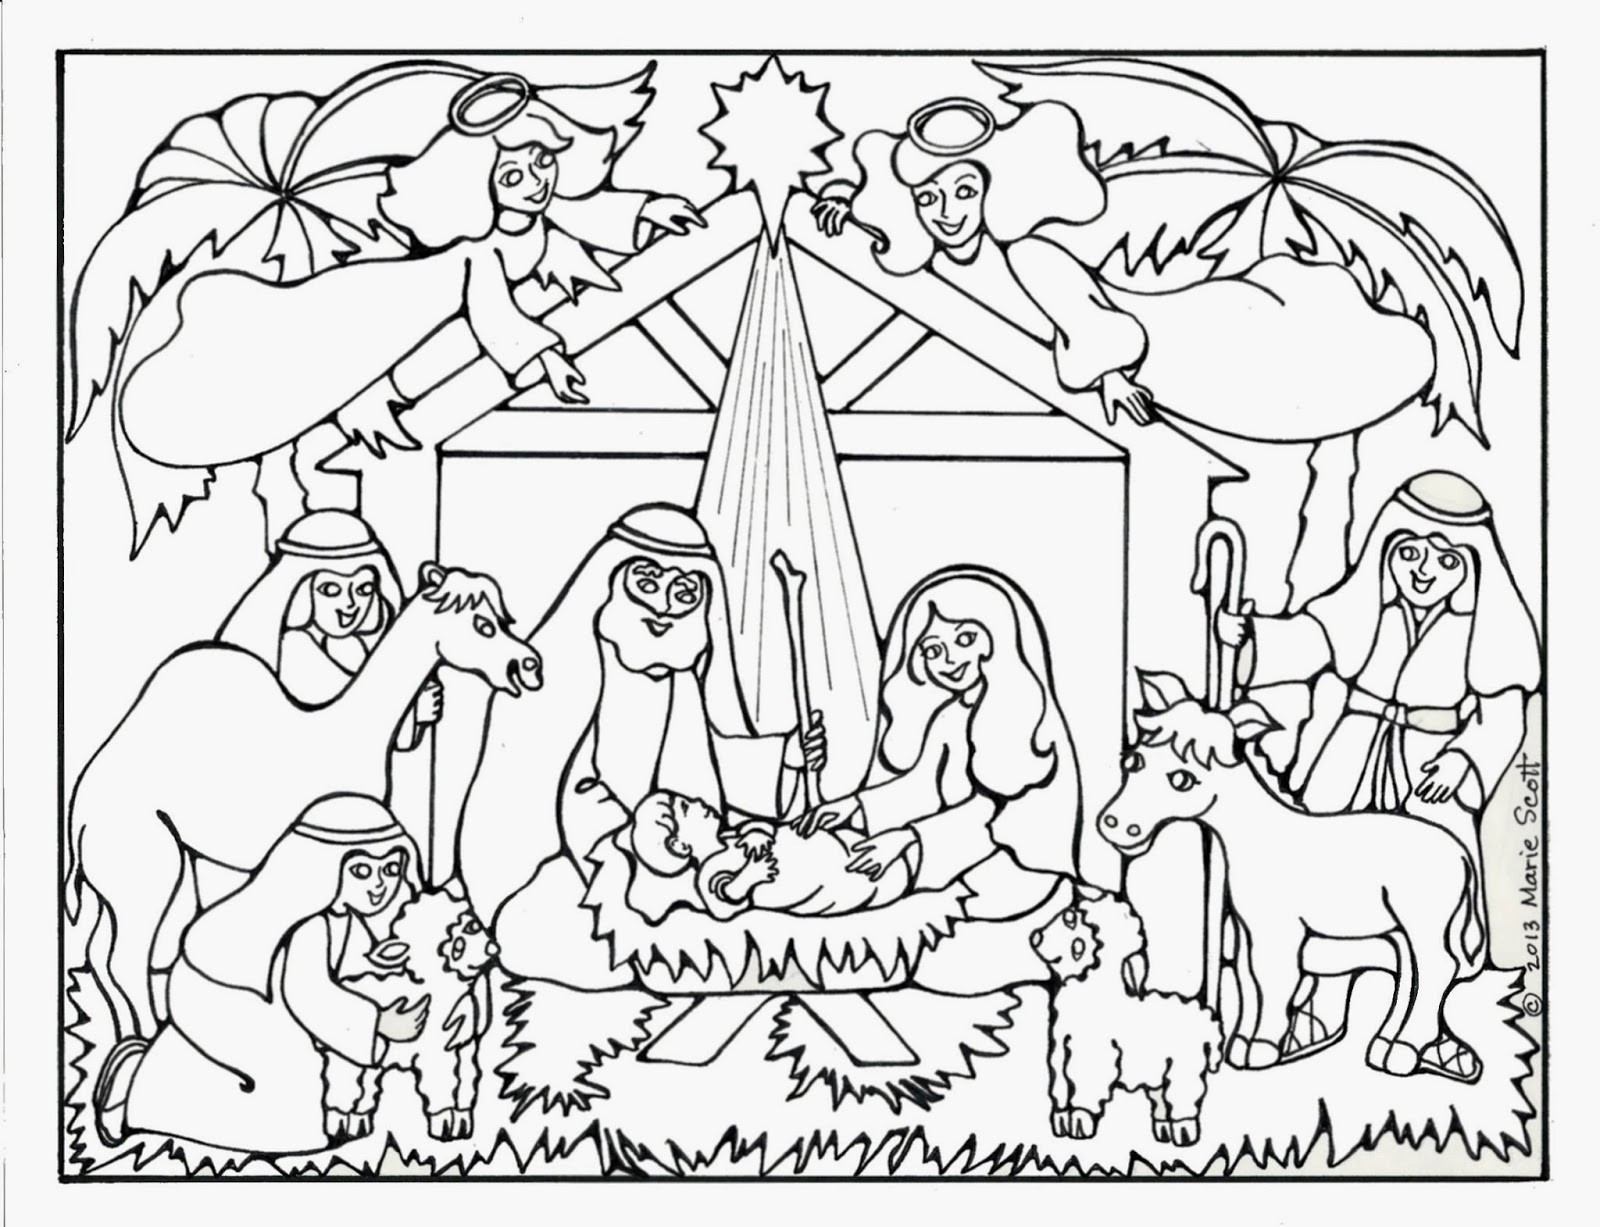 Christmas Nativity Coloring Sheets For Kids  Serendipity Hollow Nativity Coloring Book Page